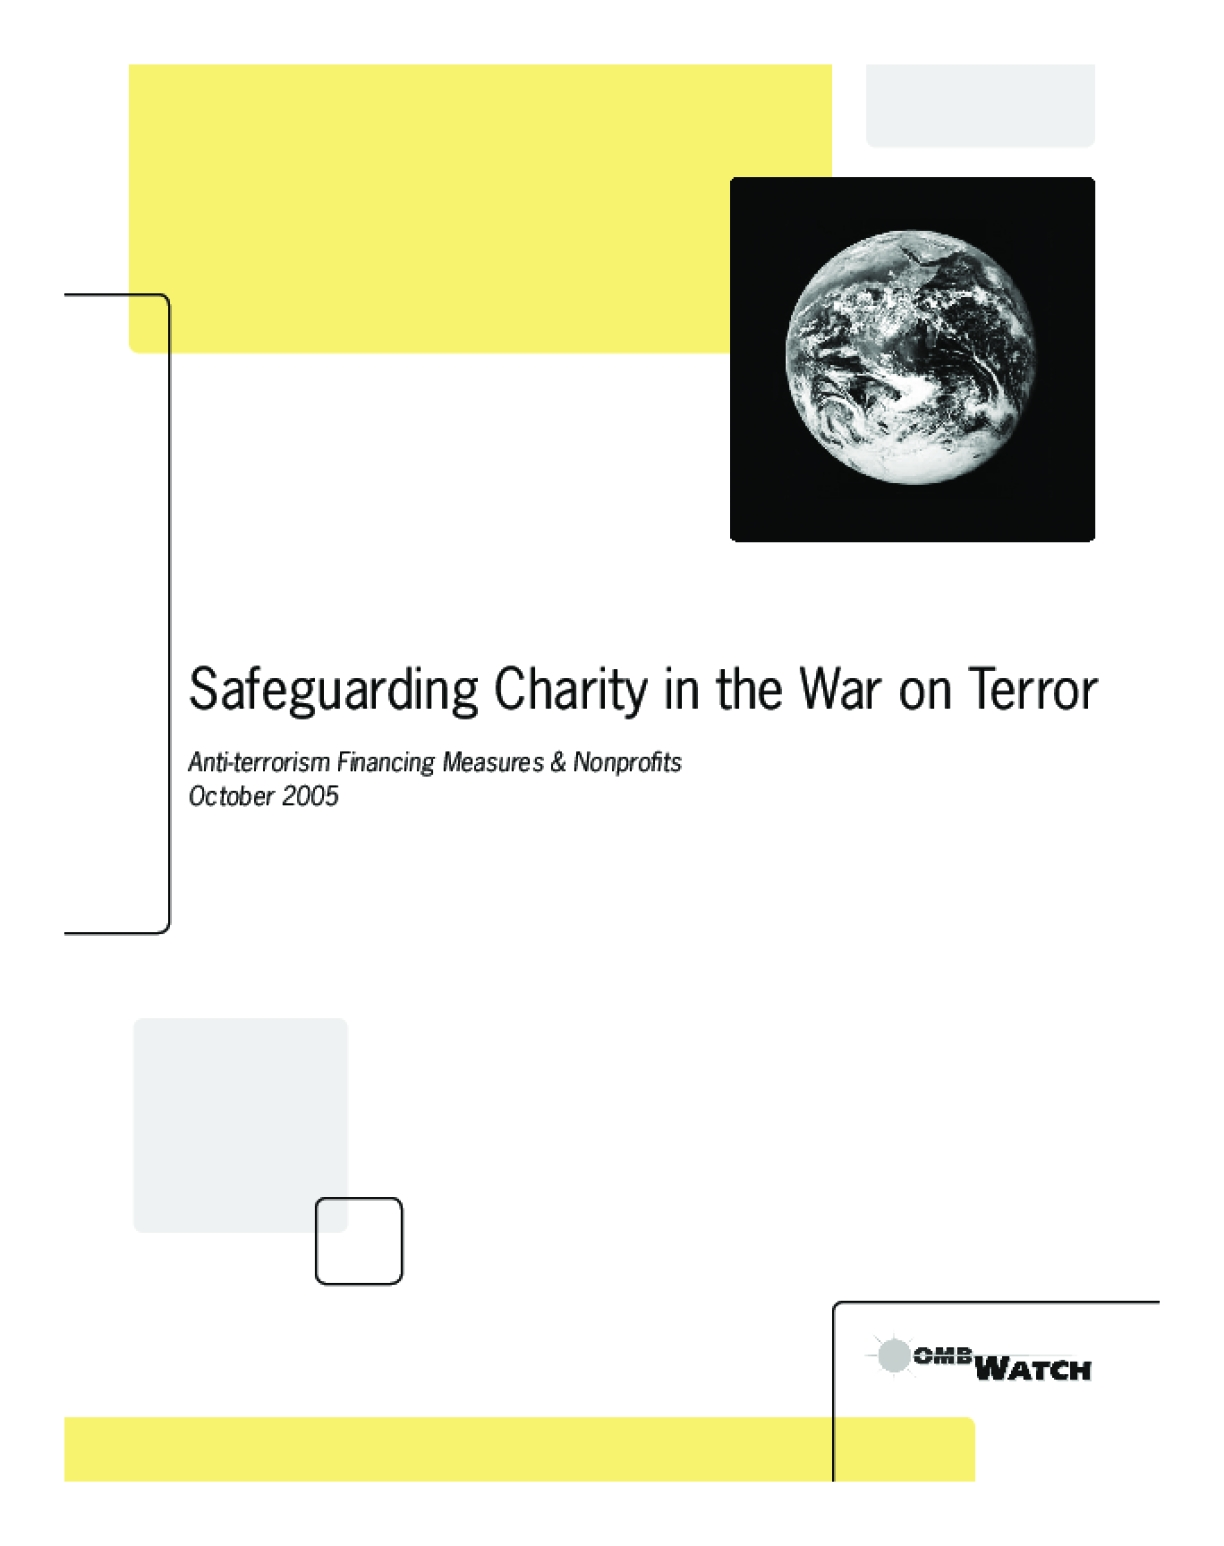 Safeguarding Charity in the War on Terror